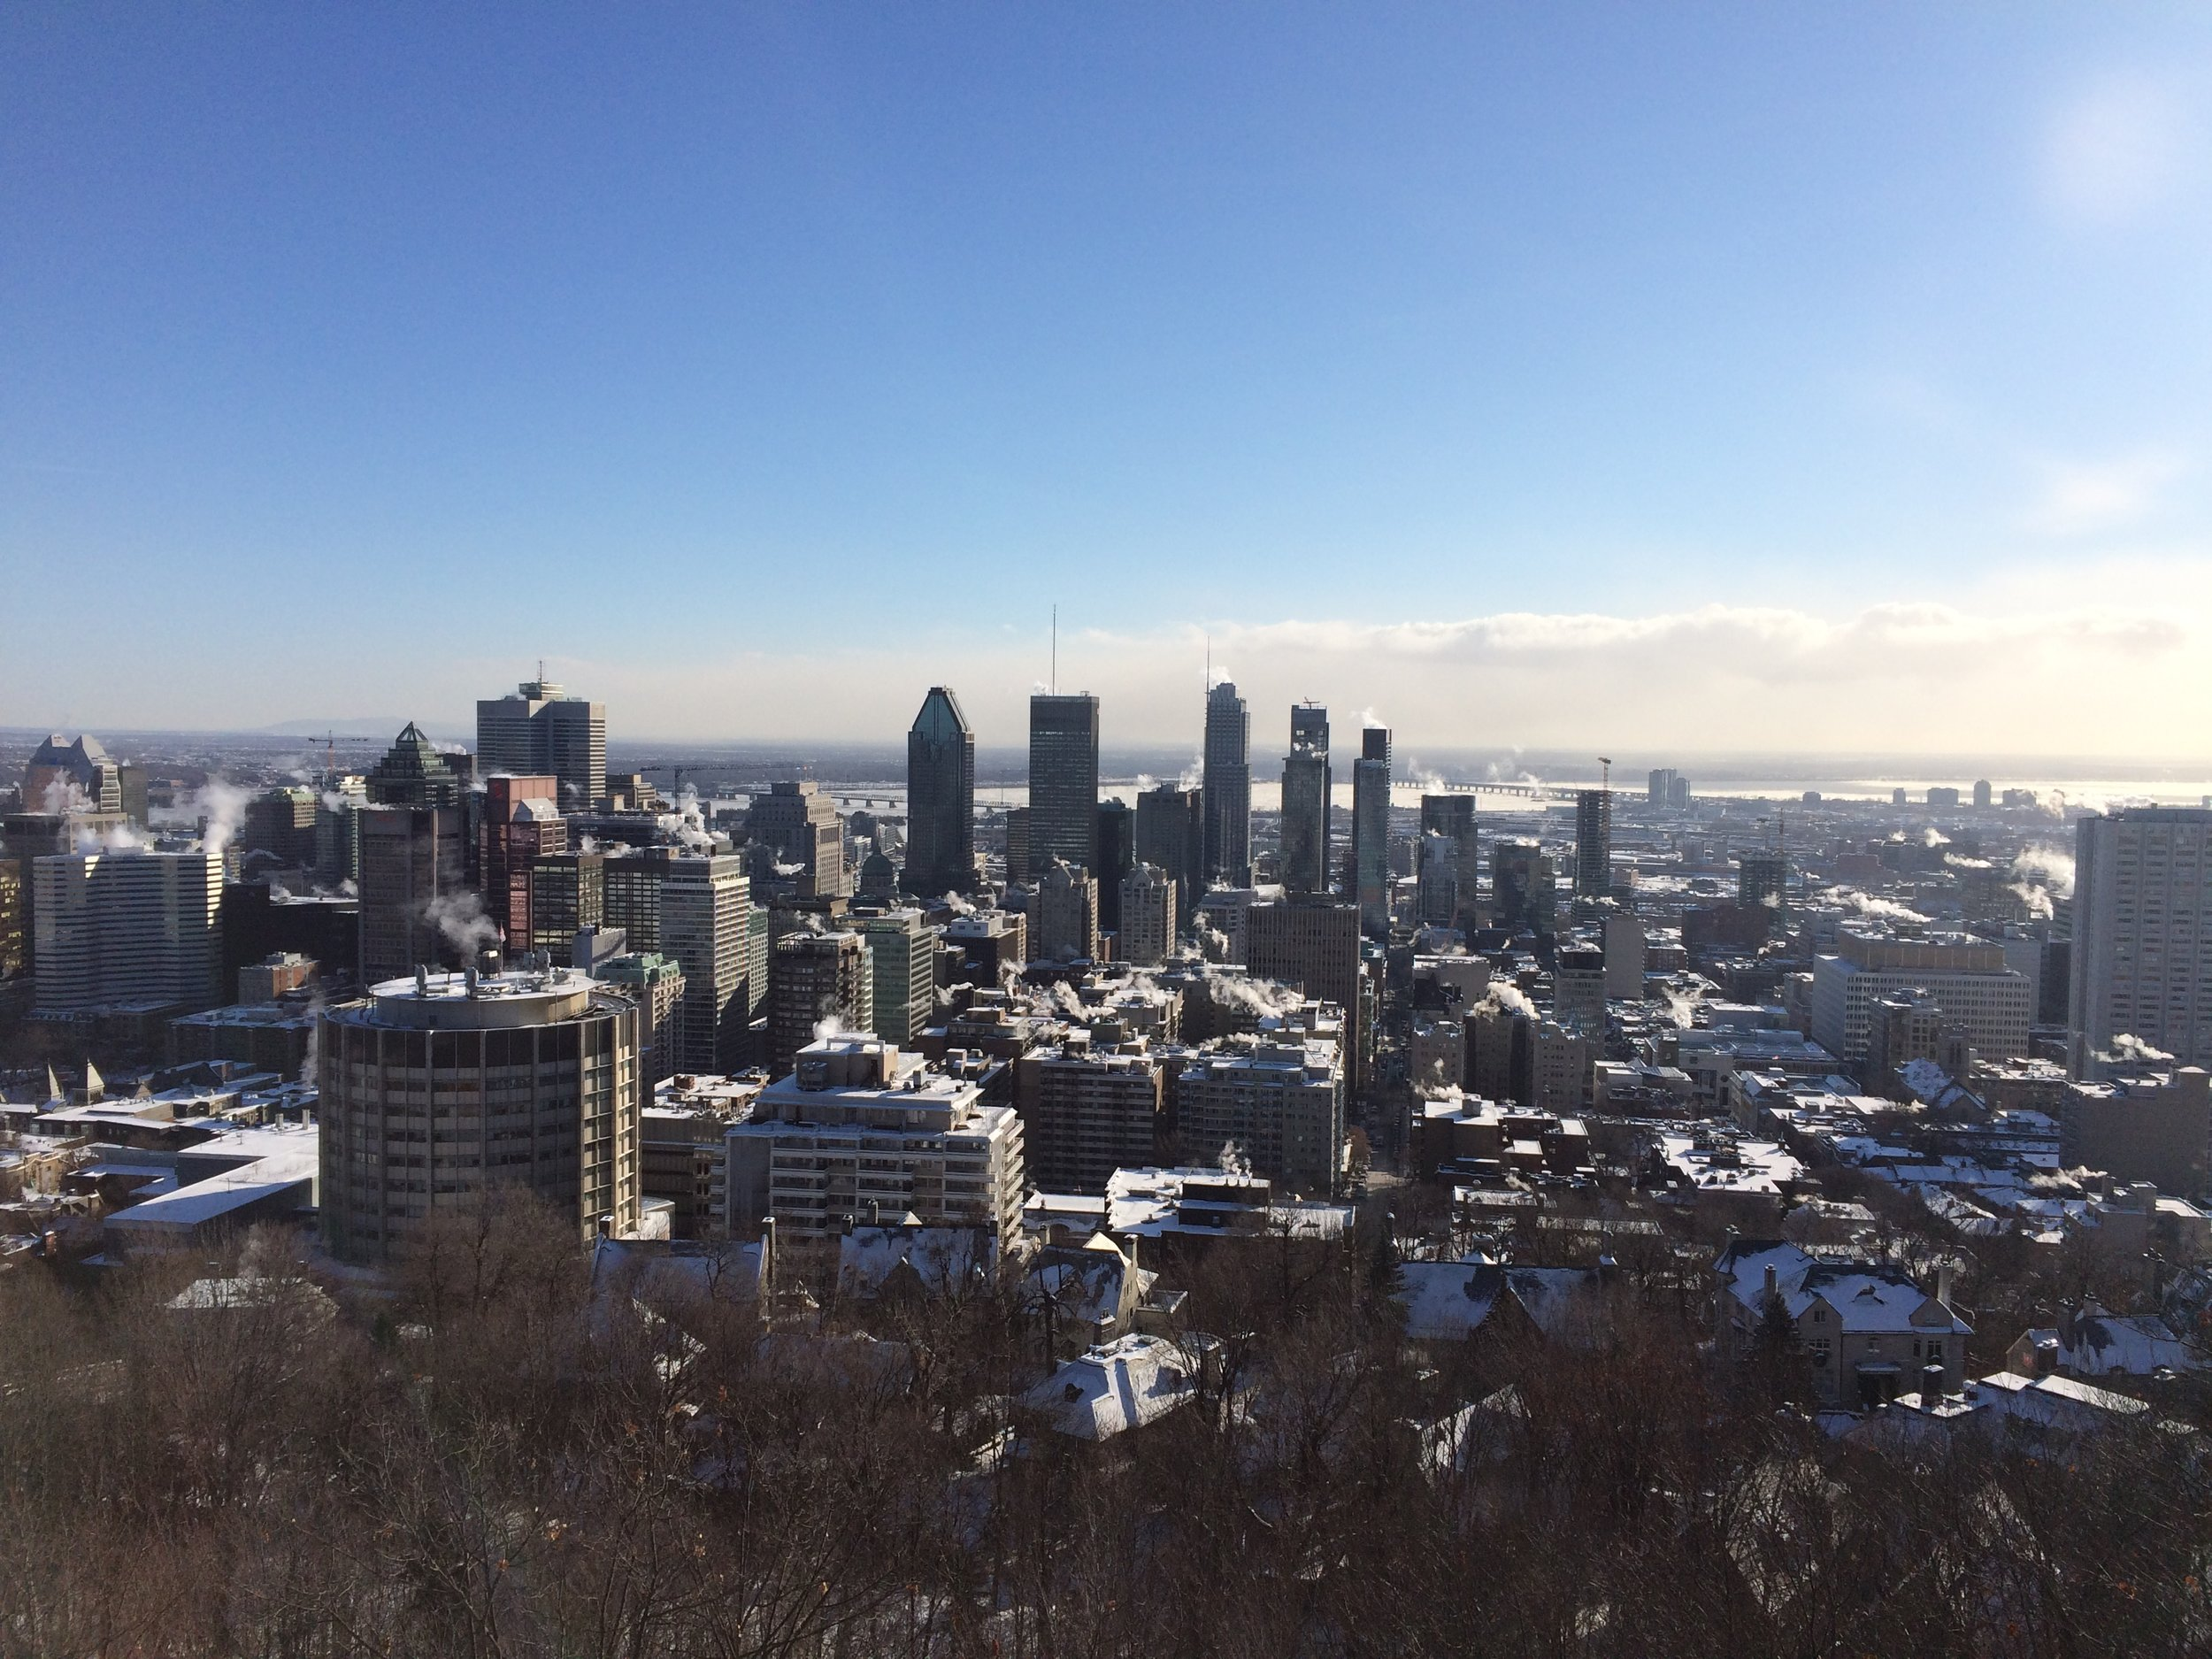 The view of Montreal from the Chalet du Mont Royal. It was a cool 5 degrees at this point. Quite a hike but worth the view.